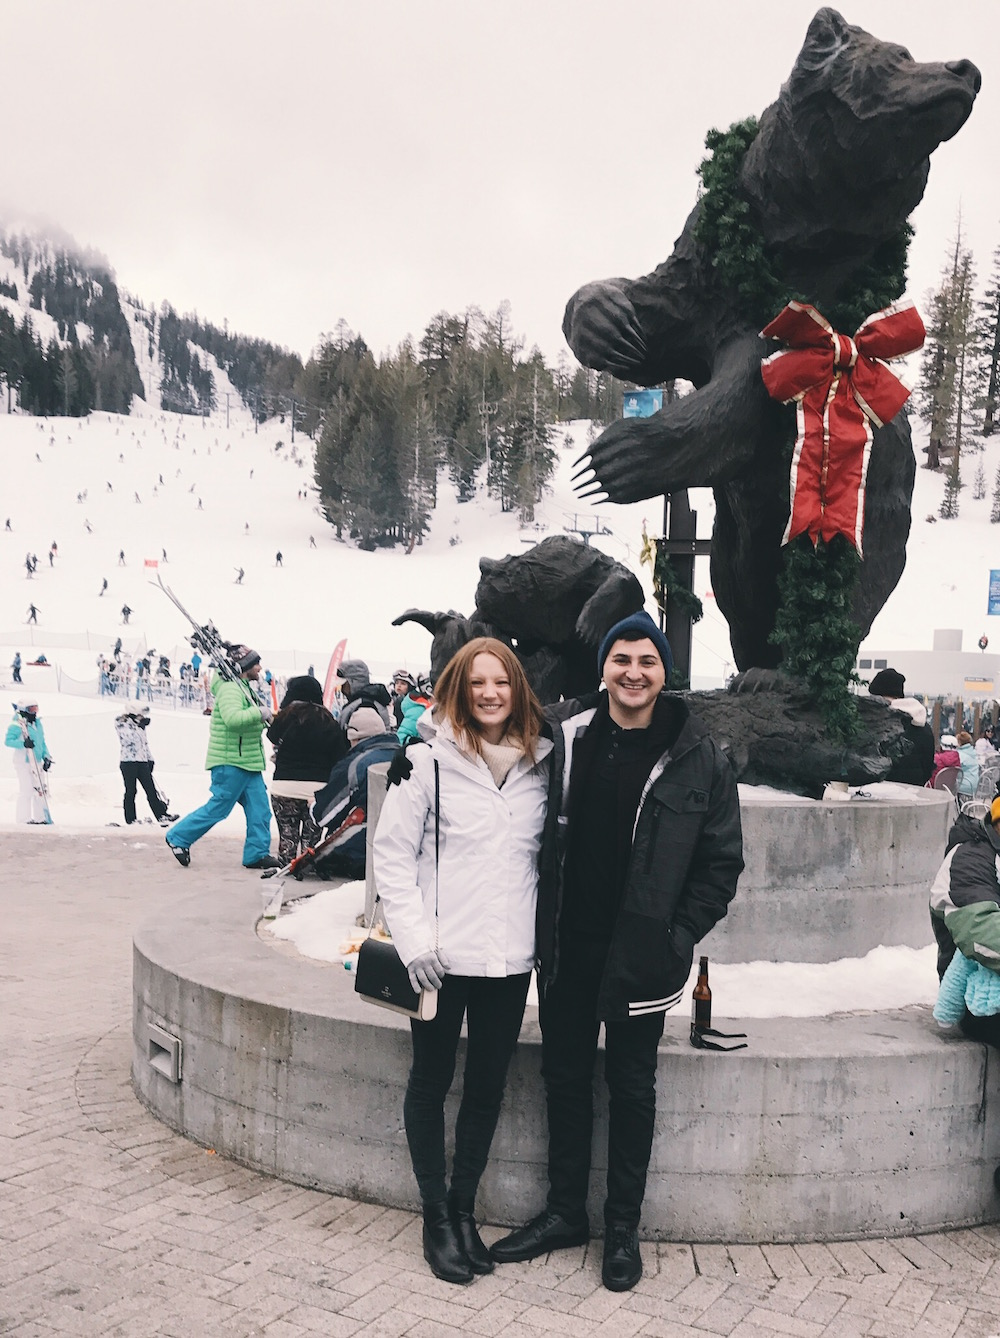 Brooke Christy and David Corcos next to bear statue on mountain